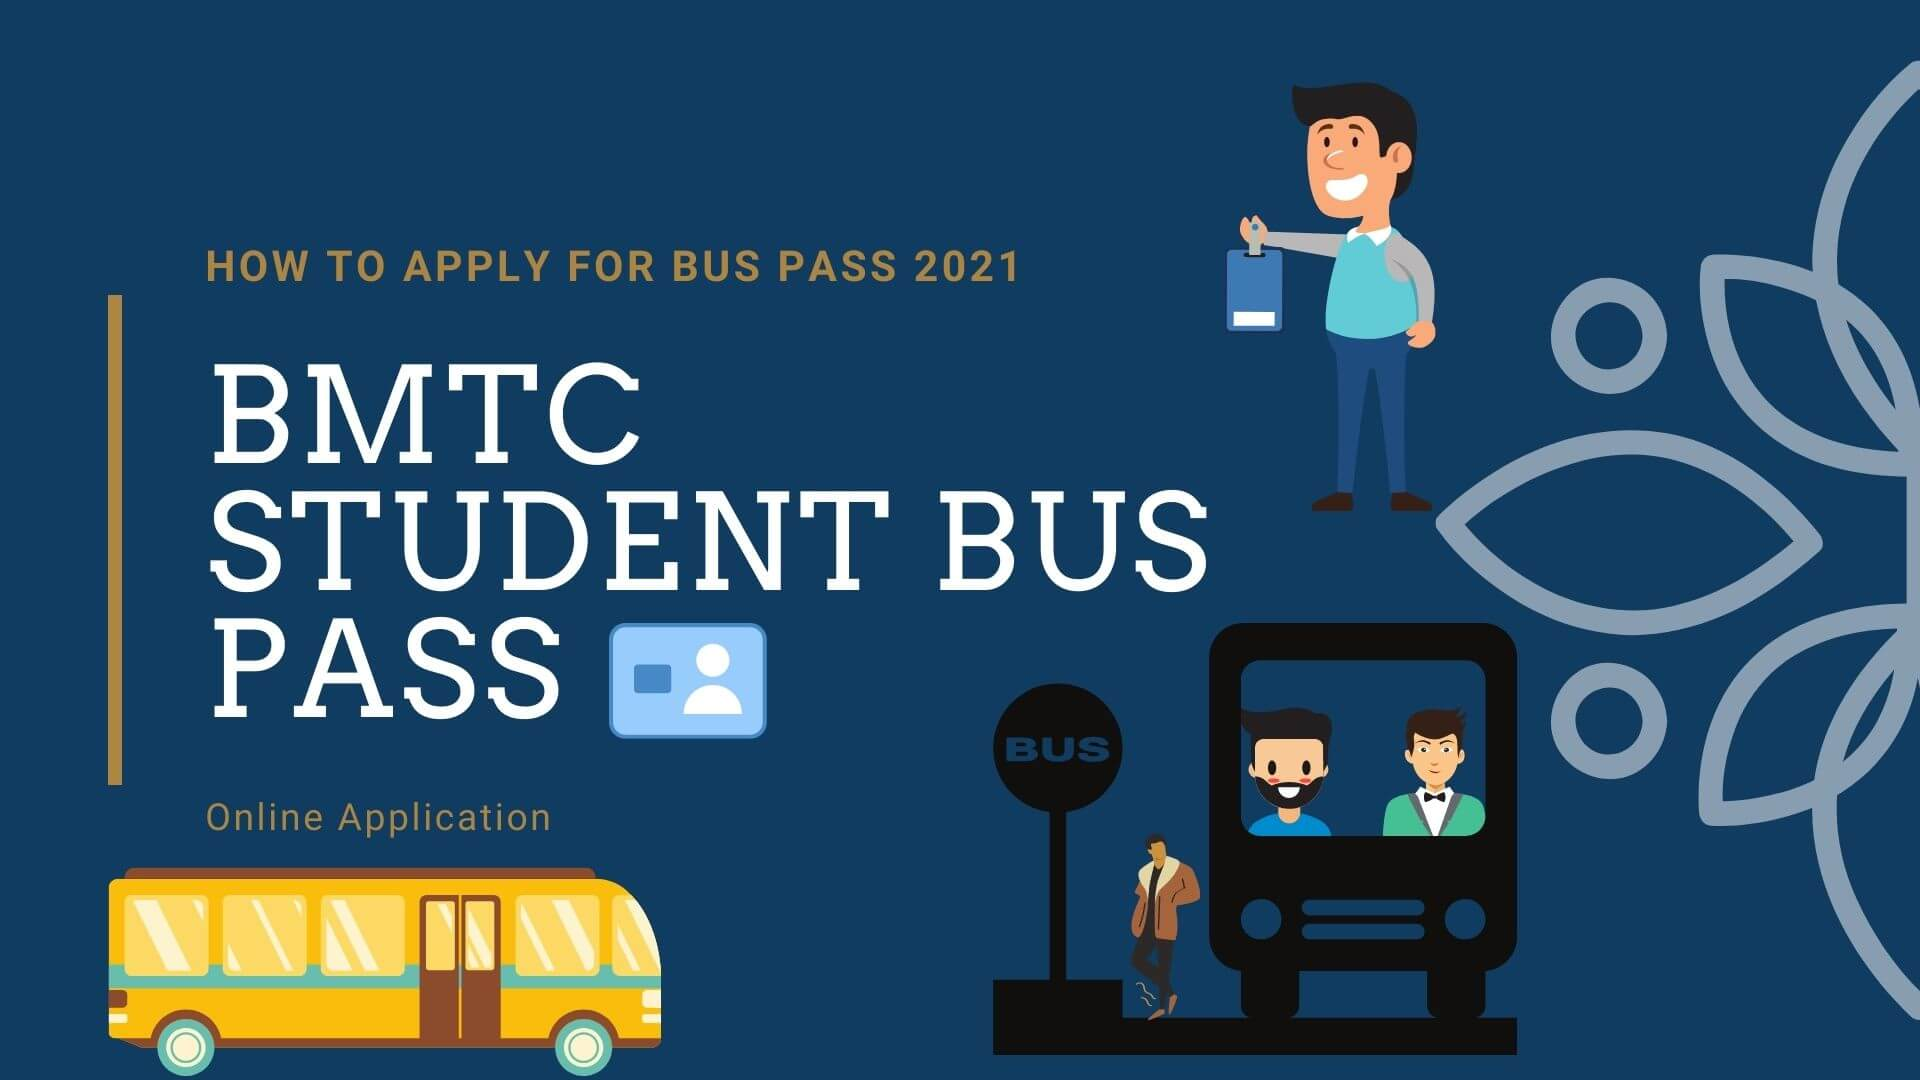 BMTC Student Bus Pass Online Application